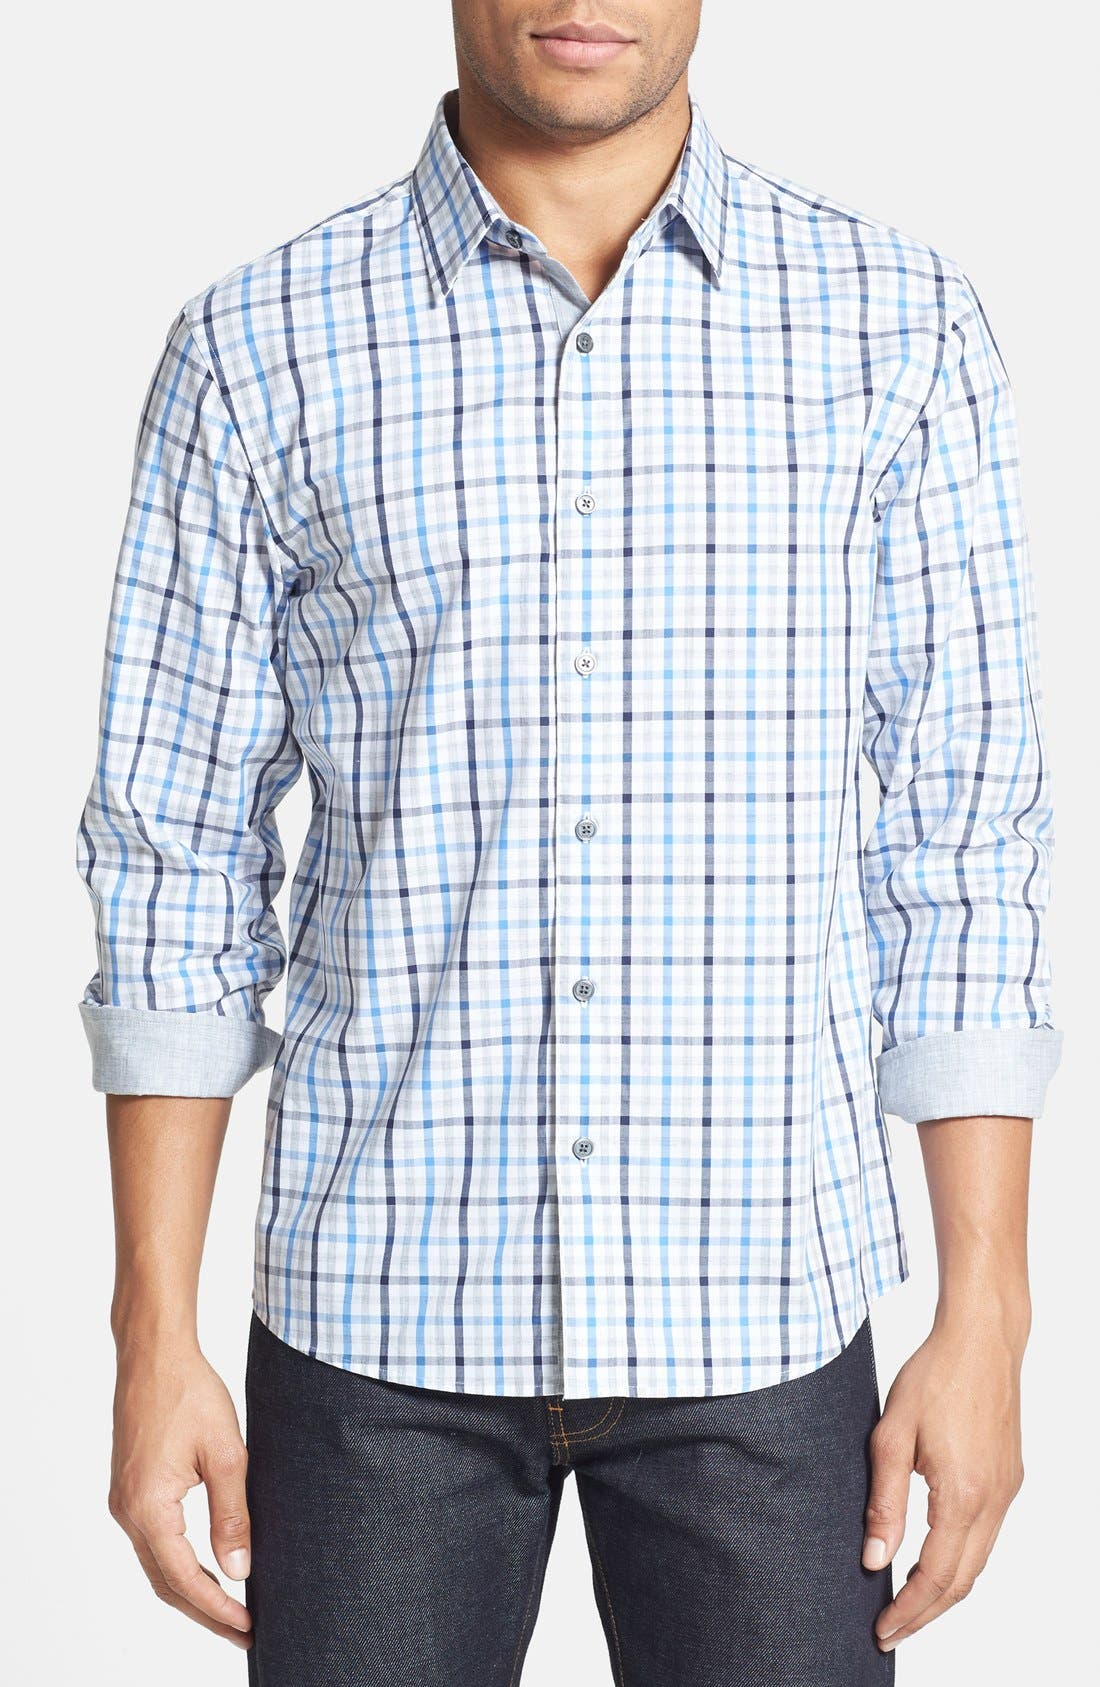 Main Image - Michael Kors 'Nixon' Trim Fit Sport Shirt